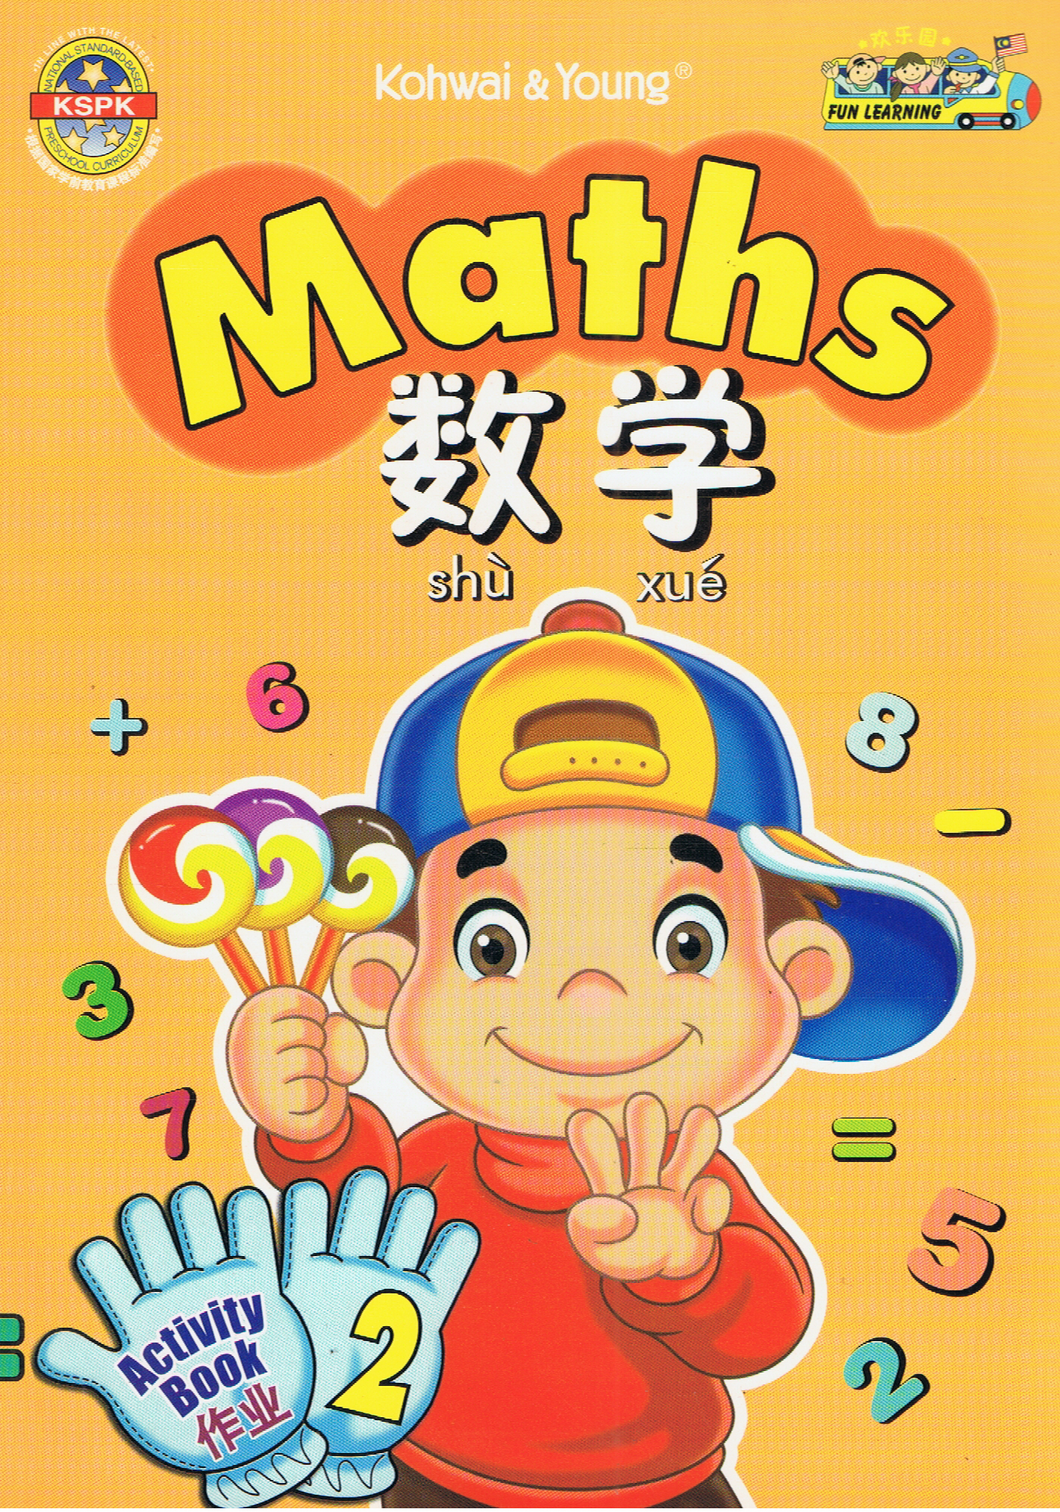 Fun Learning Maths Series Activity Book 2